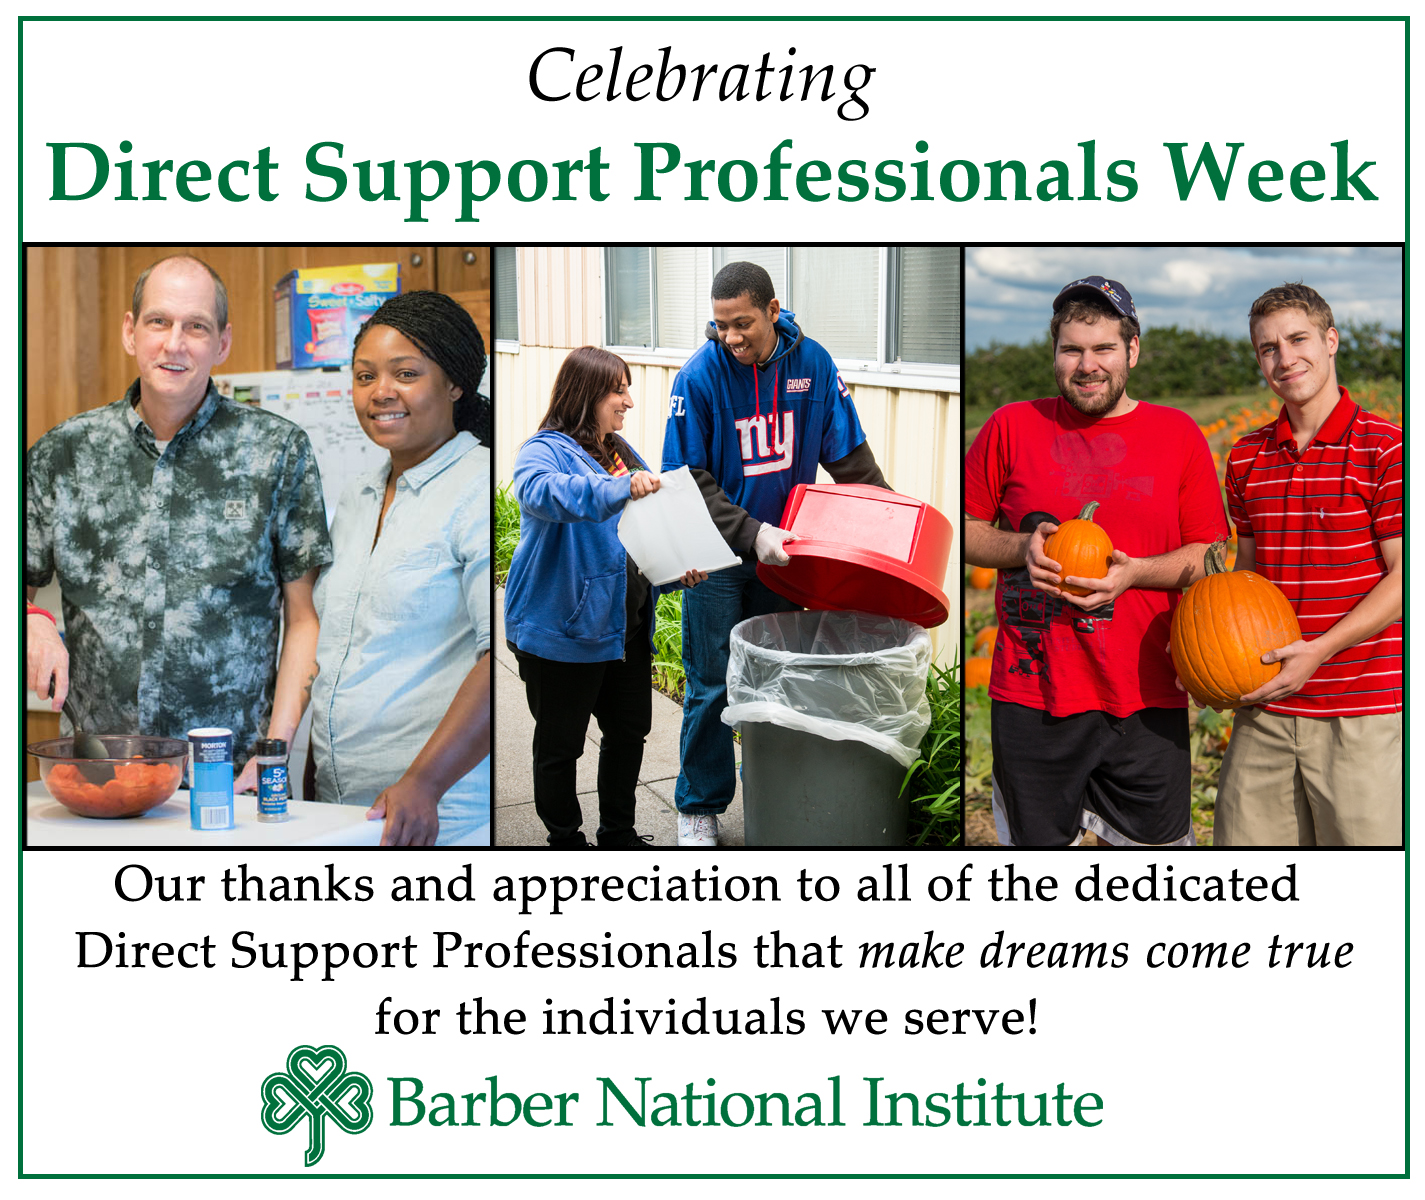 Thank you to our Direct Support Professionals!